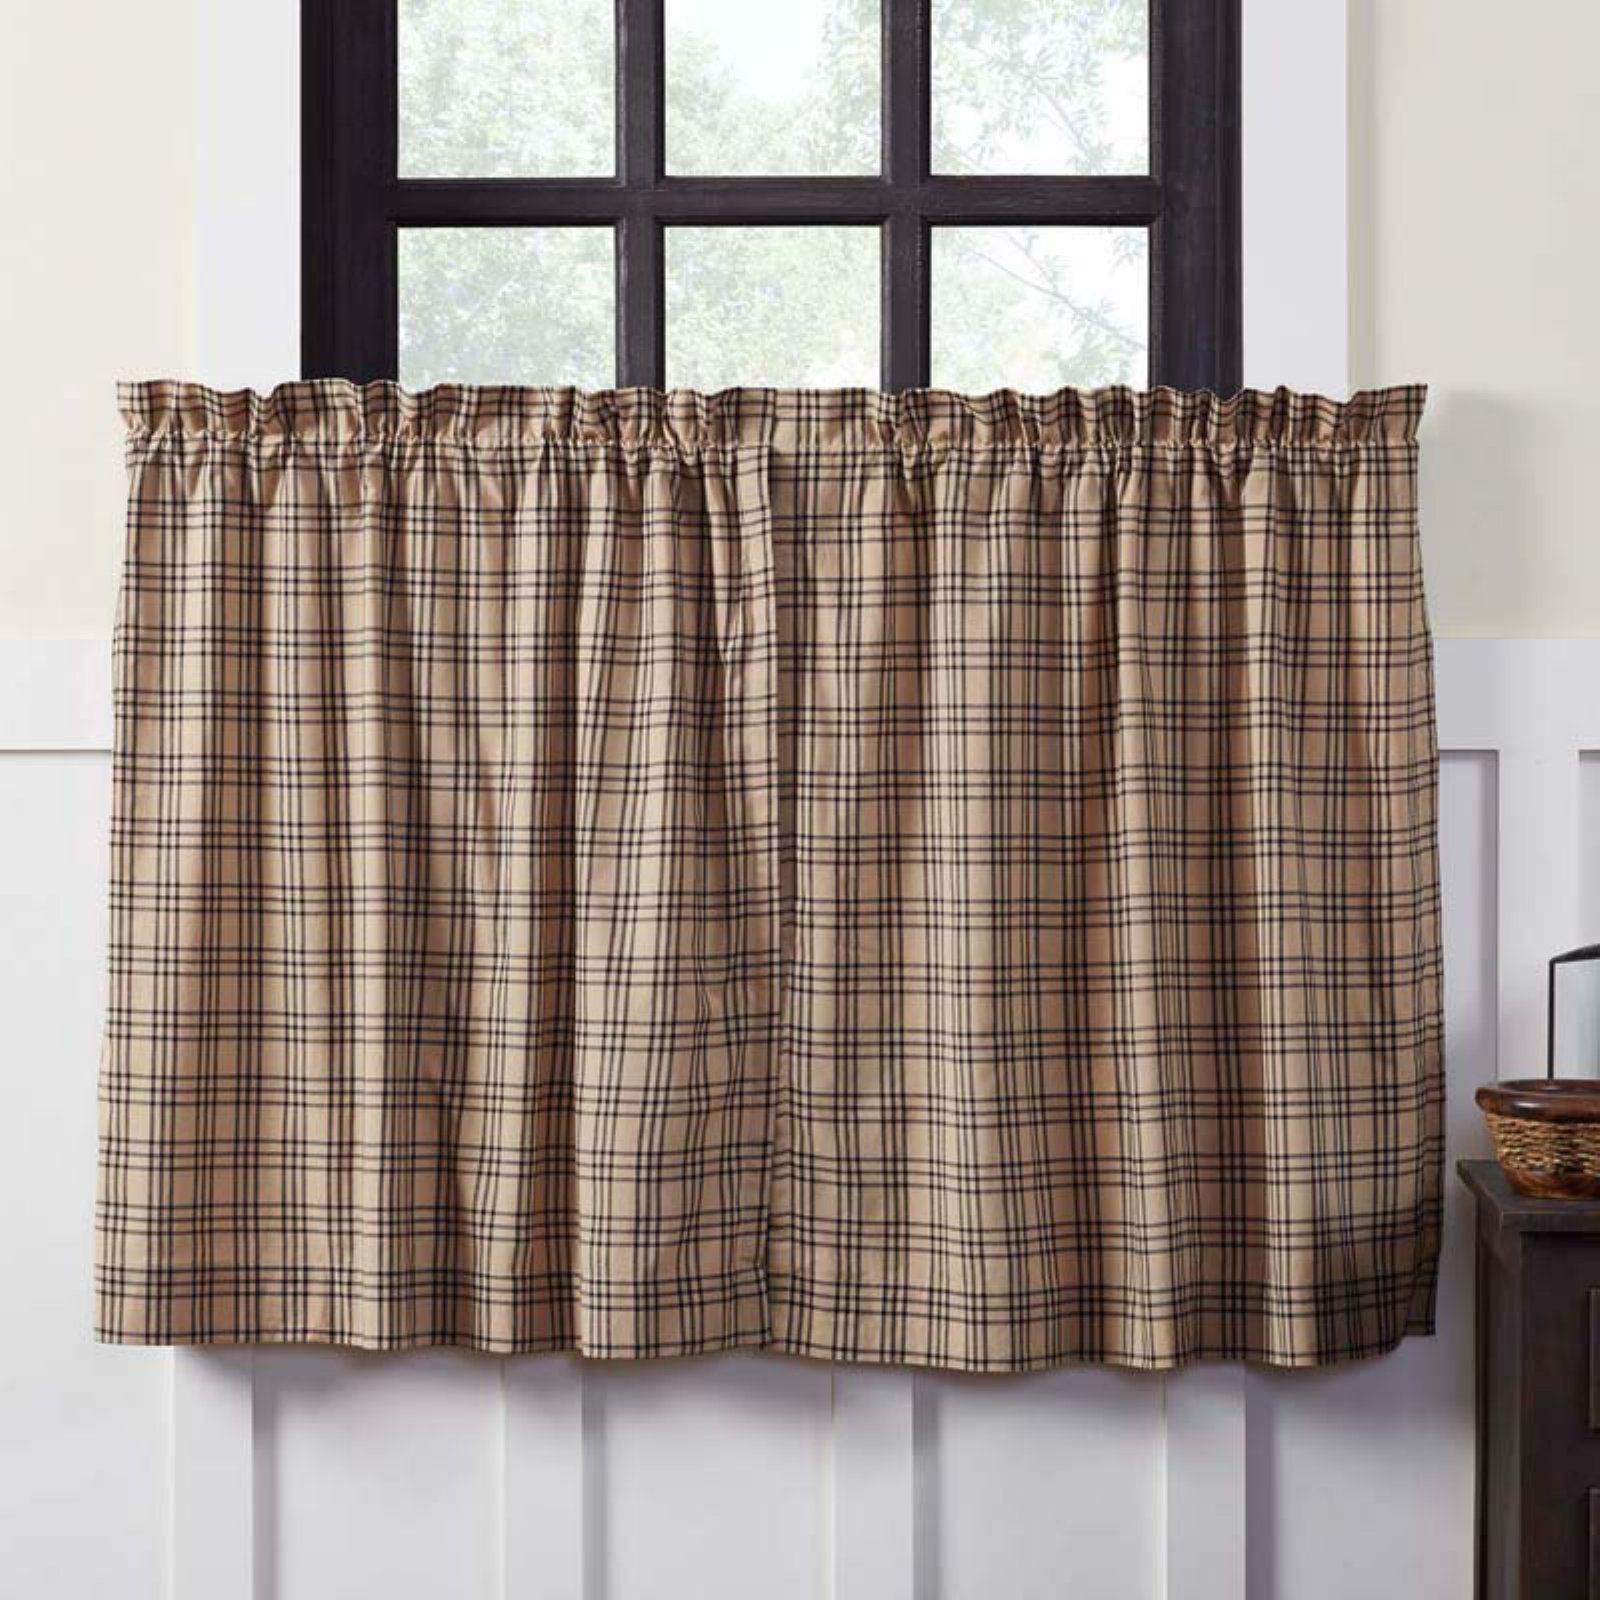 Vhc Brands Sawyer Mill Curtain Tier Set Tier Curtains Cafe Curtains